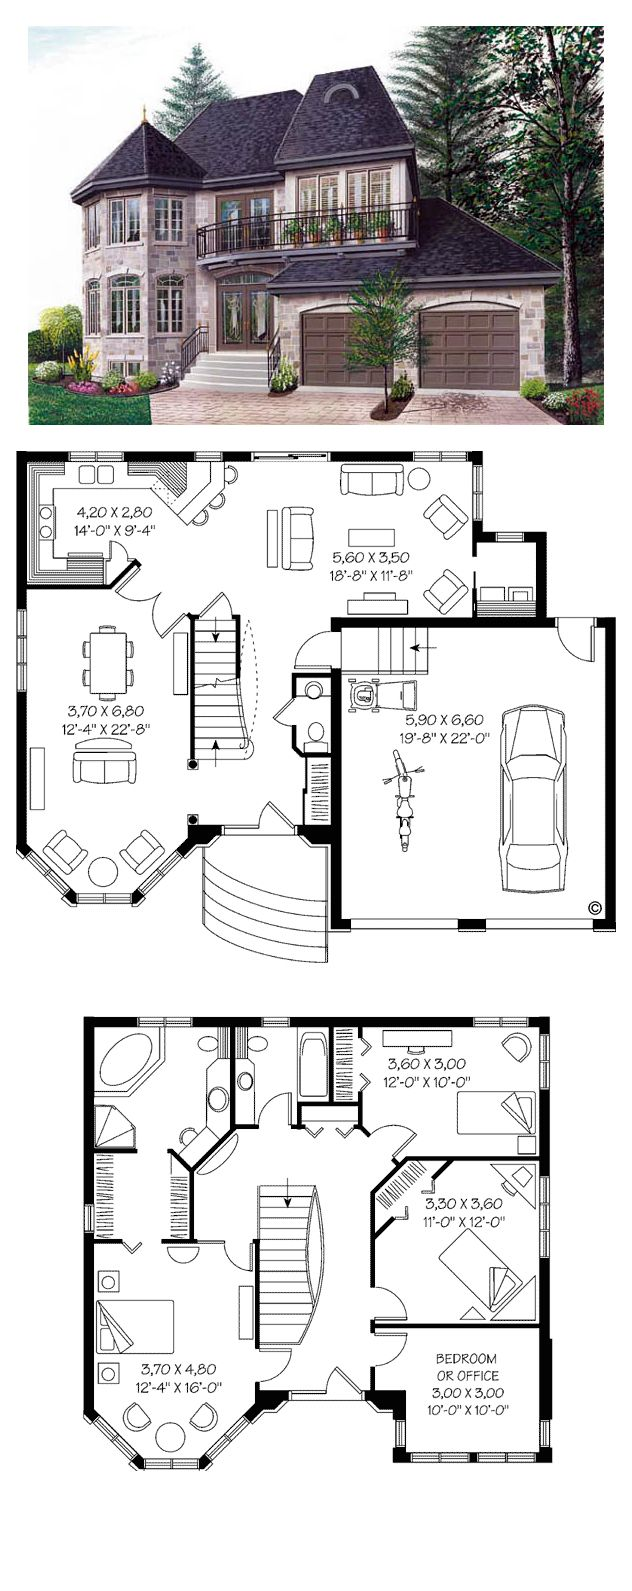 527 best Floor plans (sims3) images on Pinterest | House ...